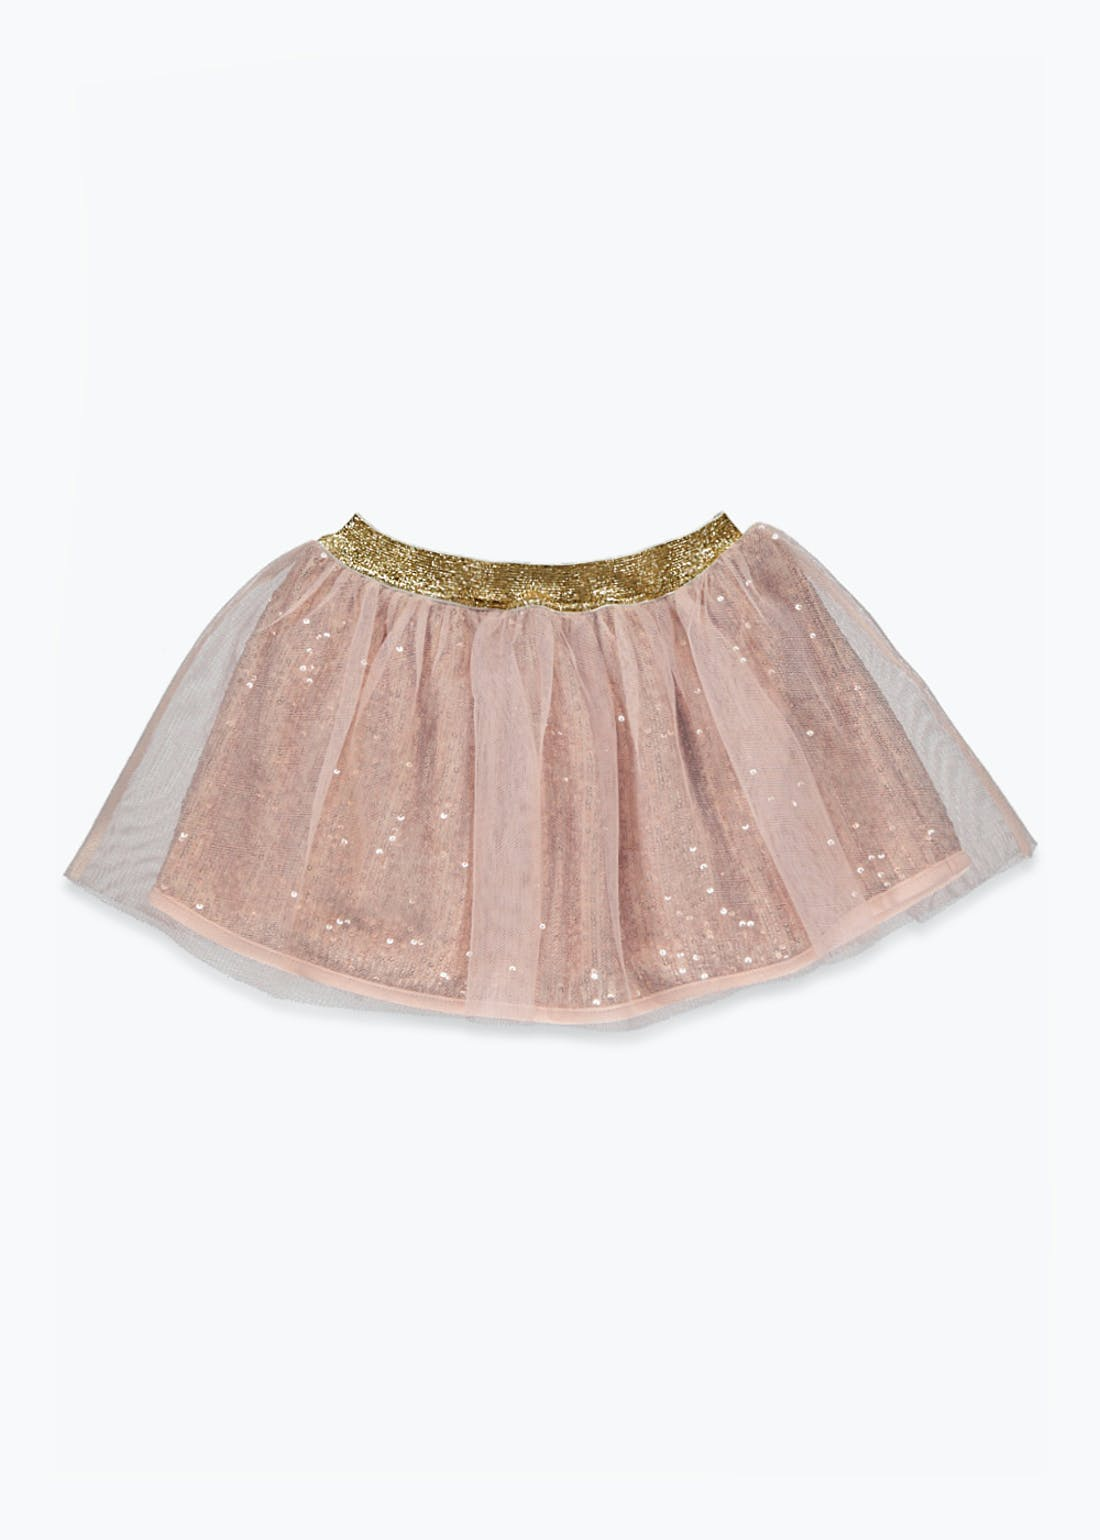 Girls Rose Gold Sequin Tutu Skirt (9mths-6yrs)